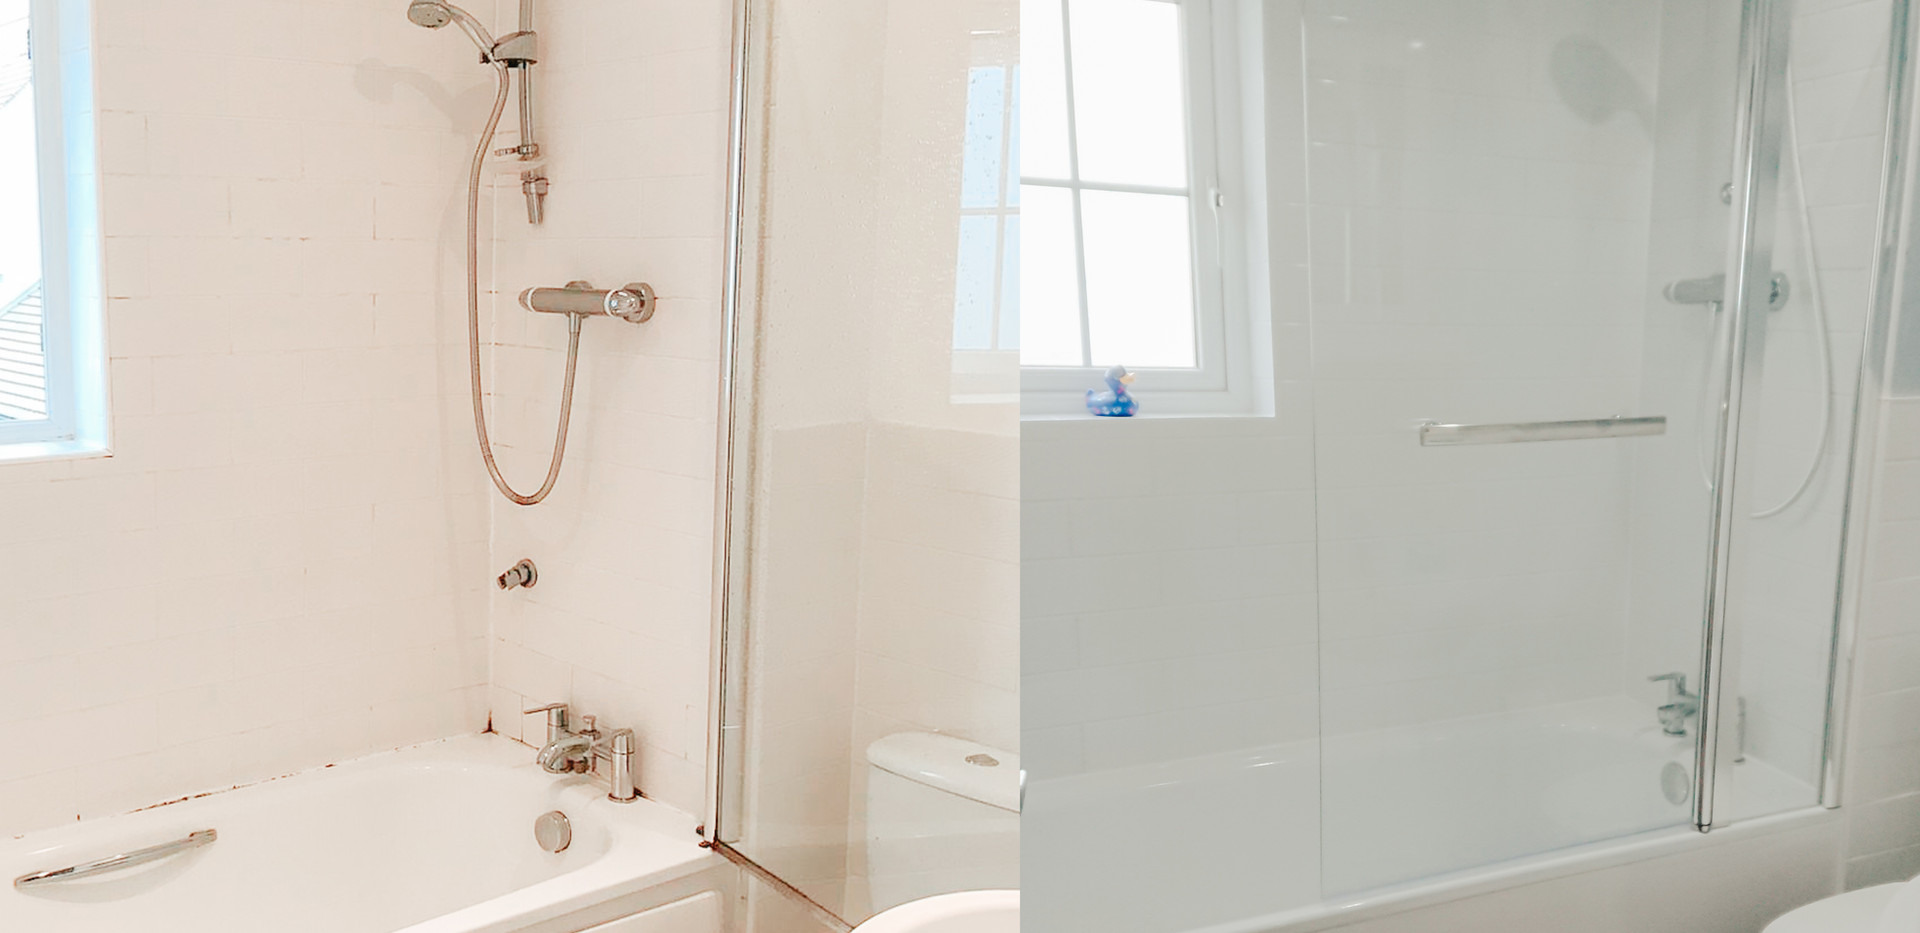 old bathroom refurbished in white and grey